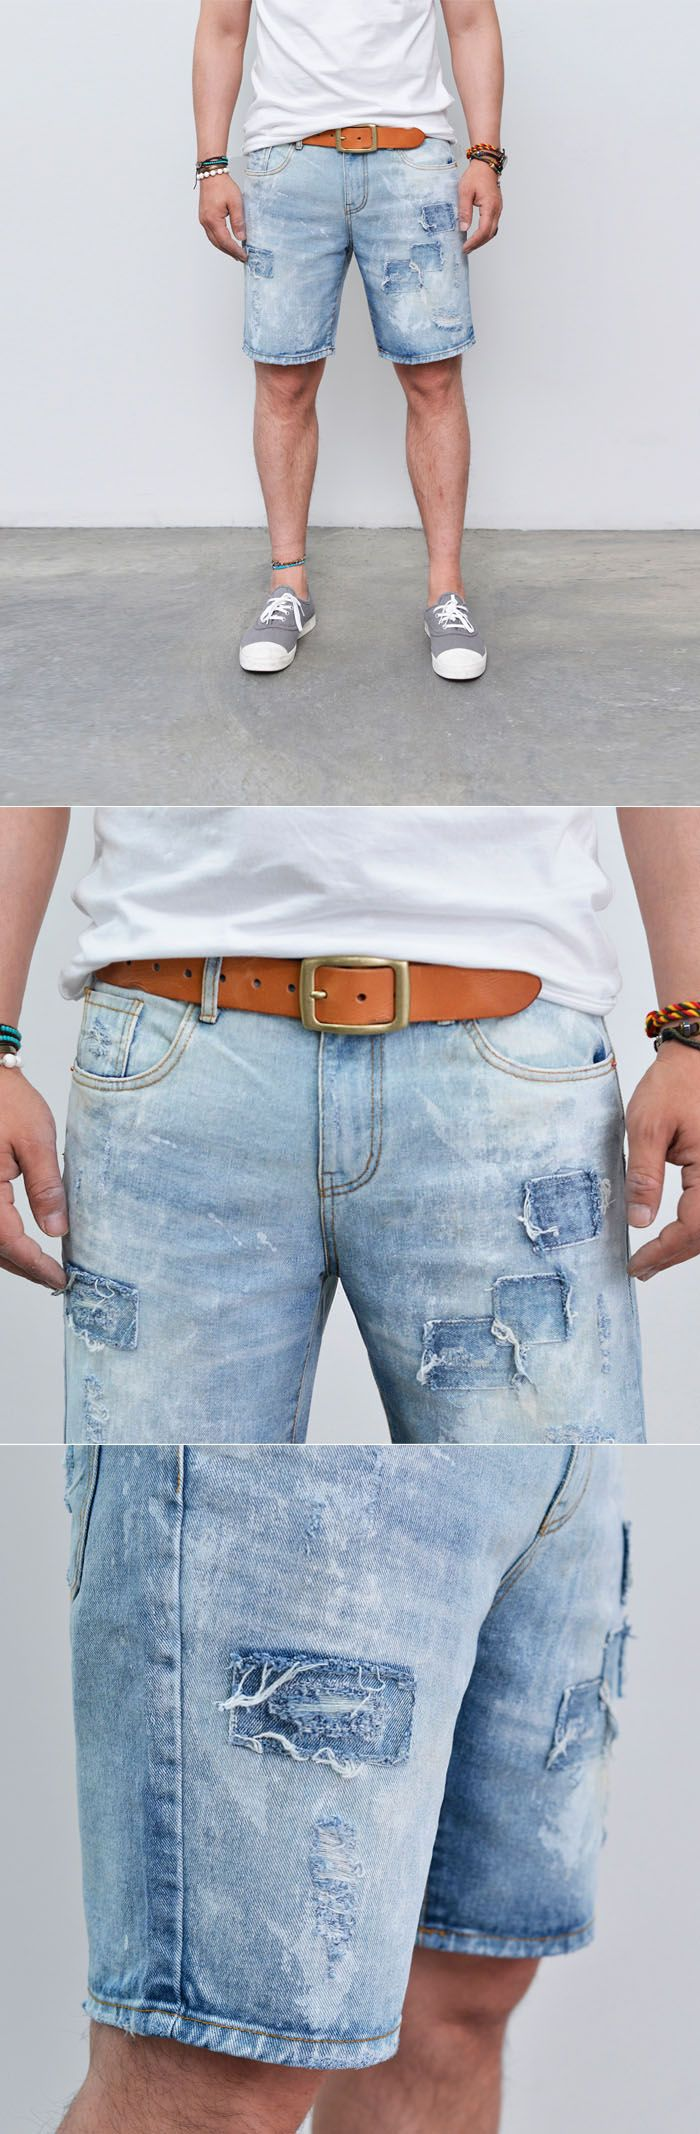 Bottoms :: Vintage Worn-out Denim Short-Shorts 80 - Mens Fashion Clothing For An Attractive Guy Look